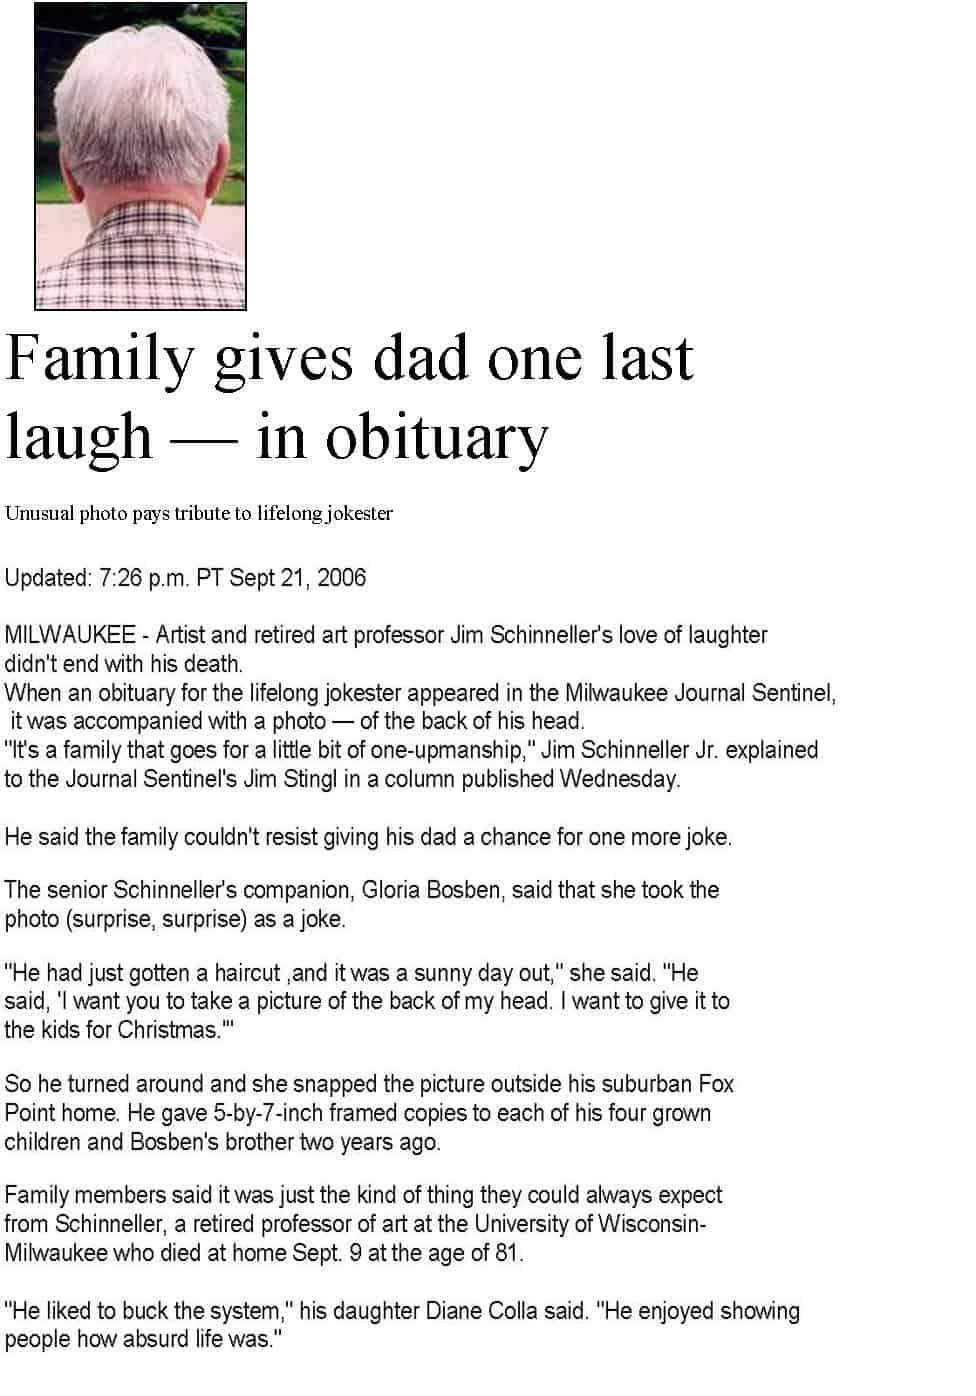 Funeral Poems For Farmers 5